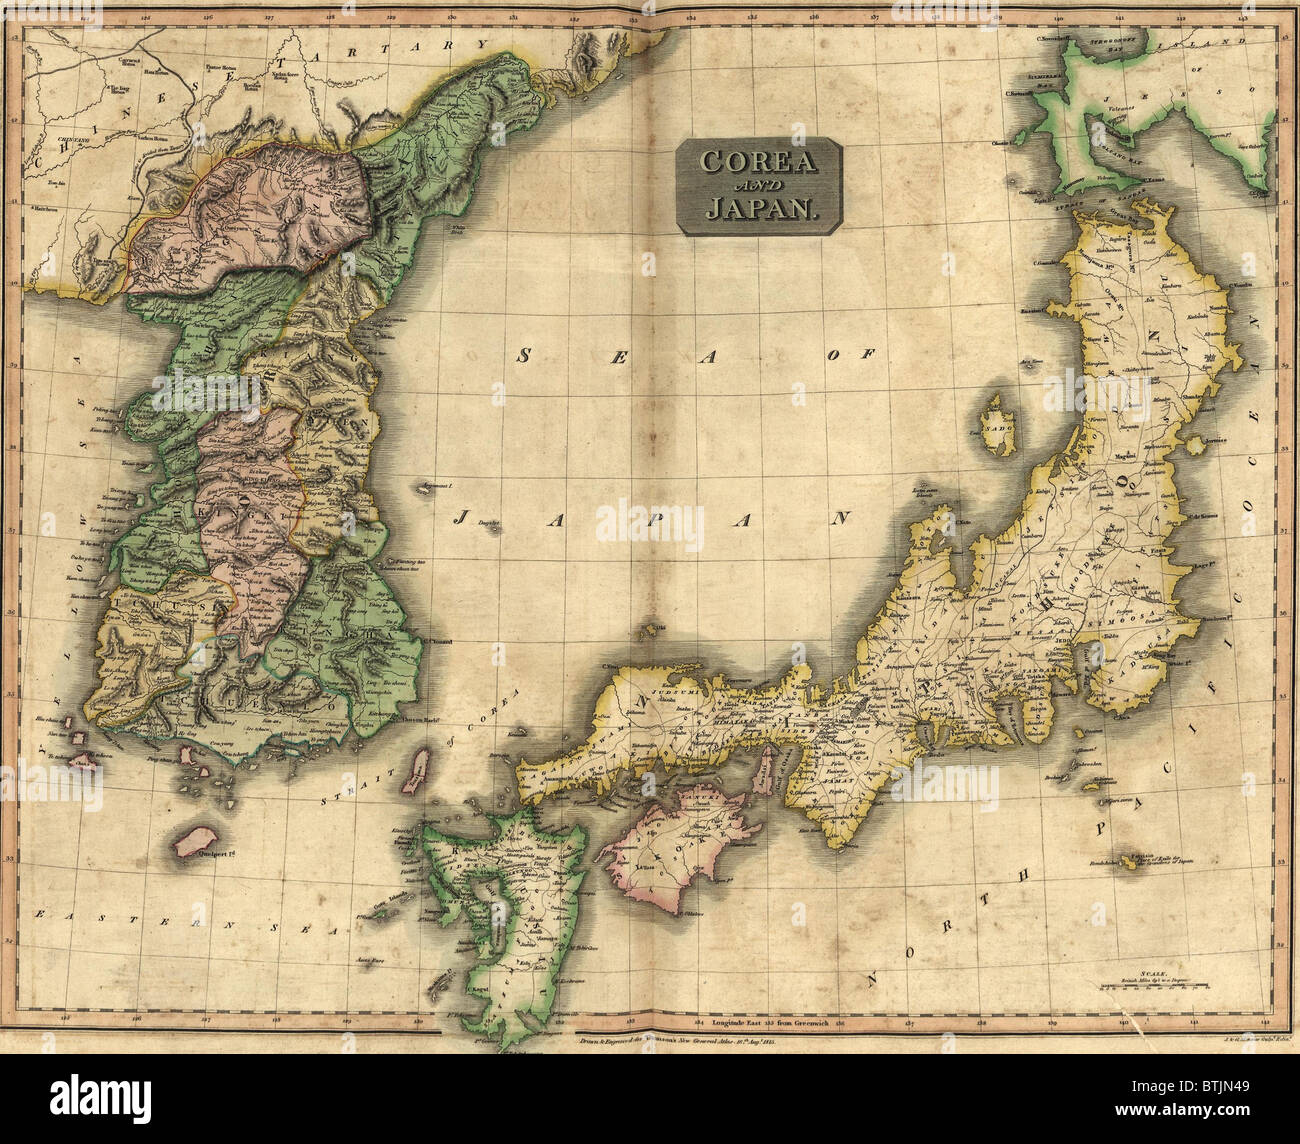 1815 map of Japan and Korea showing their geographic proximity